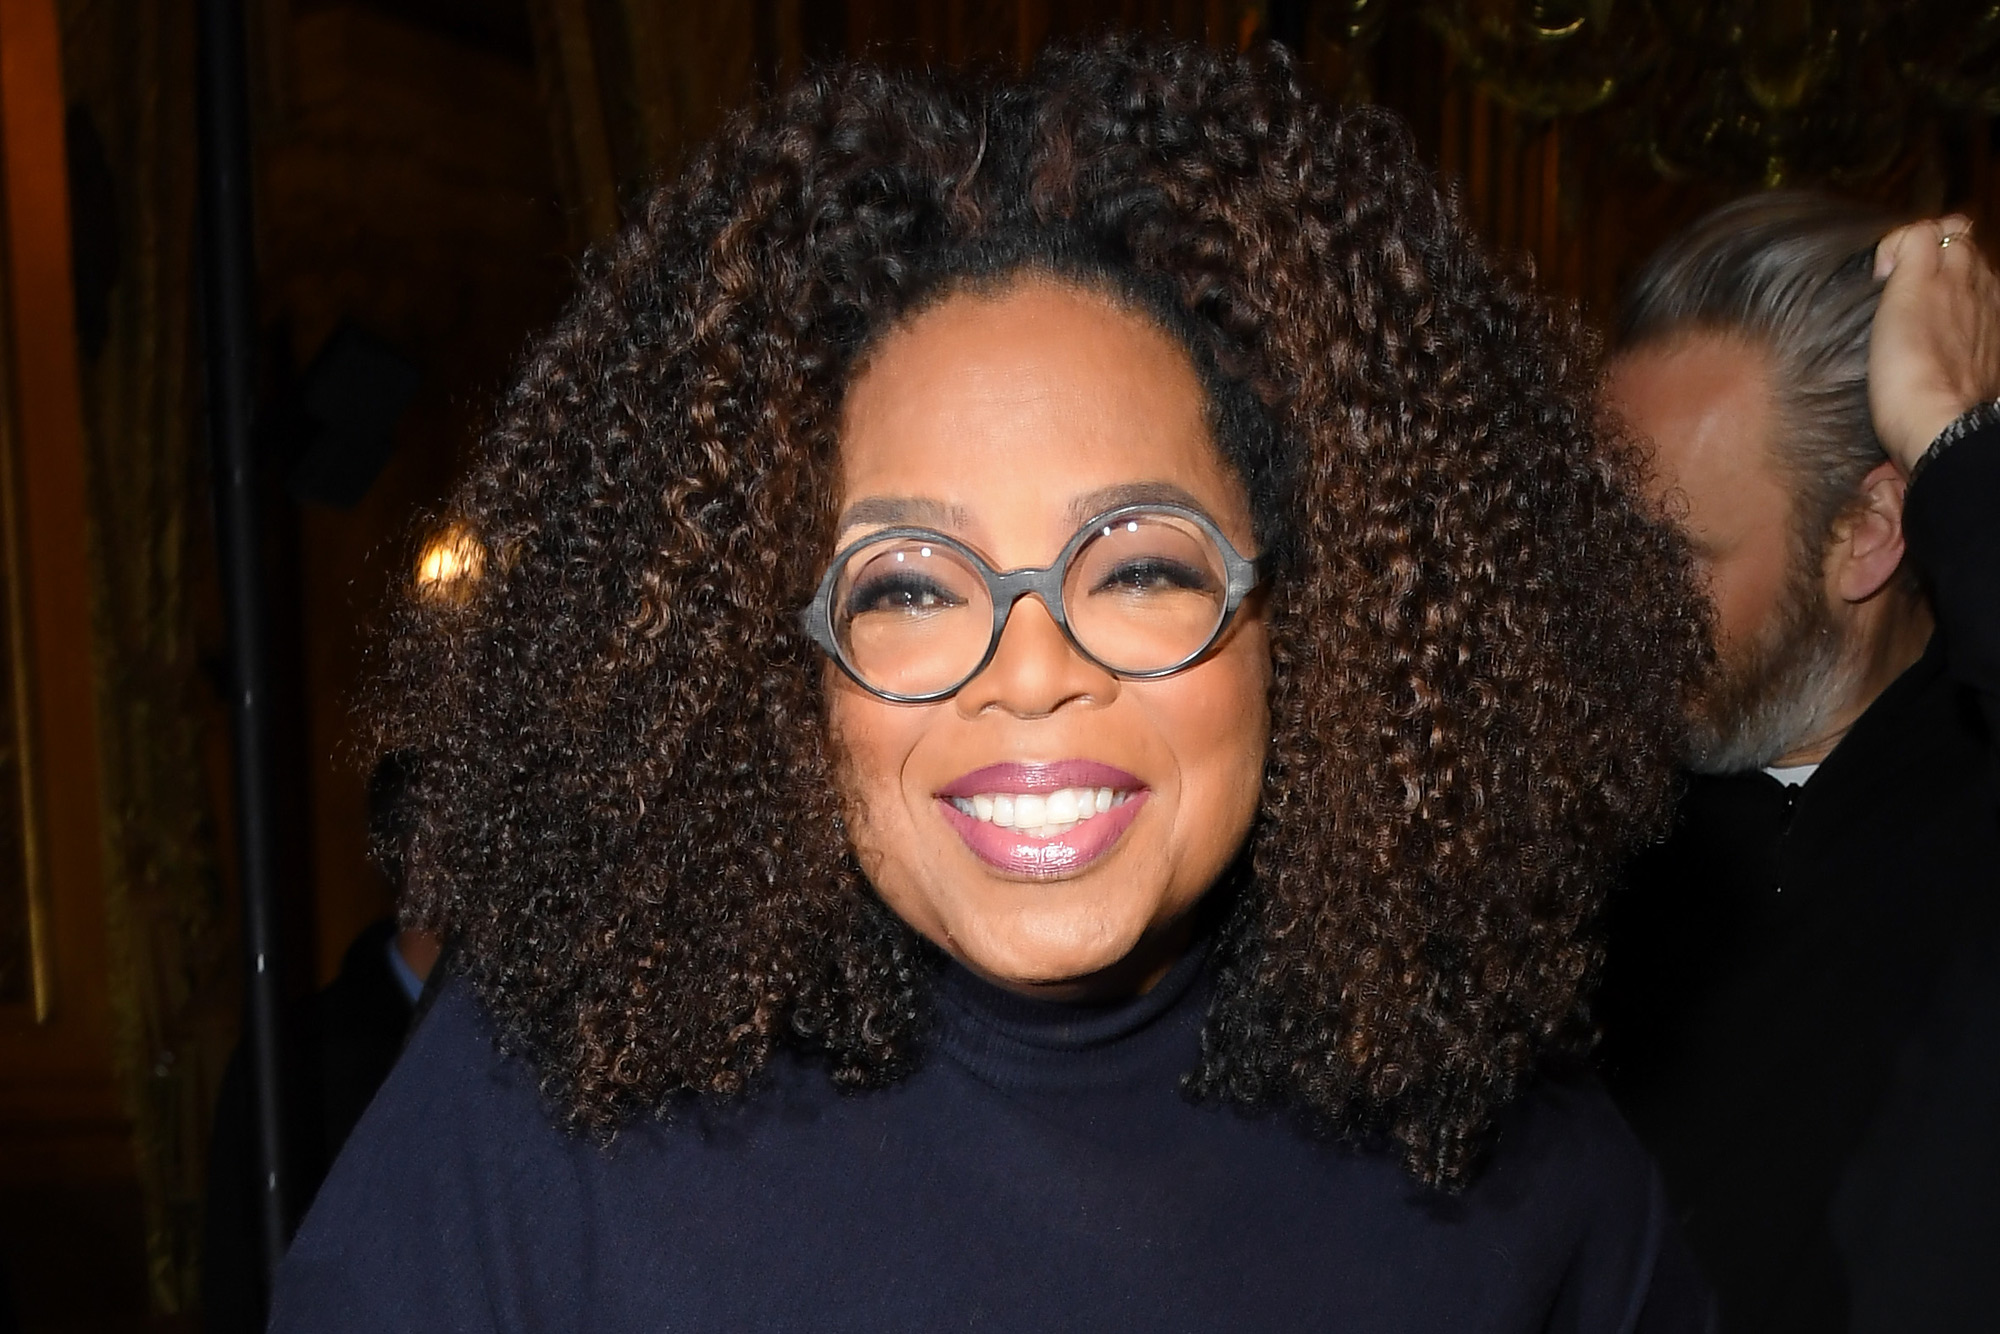 Oprah winfrey this week